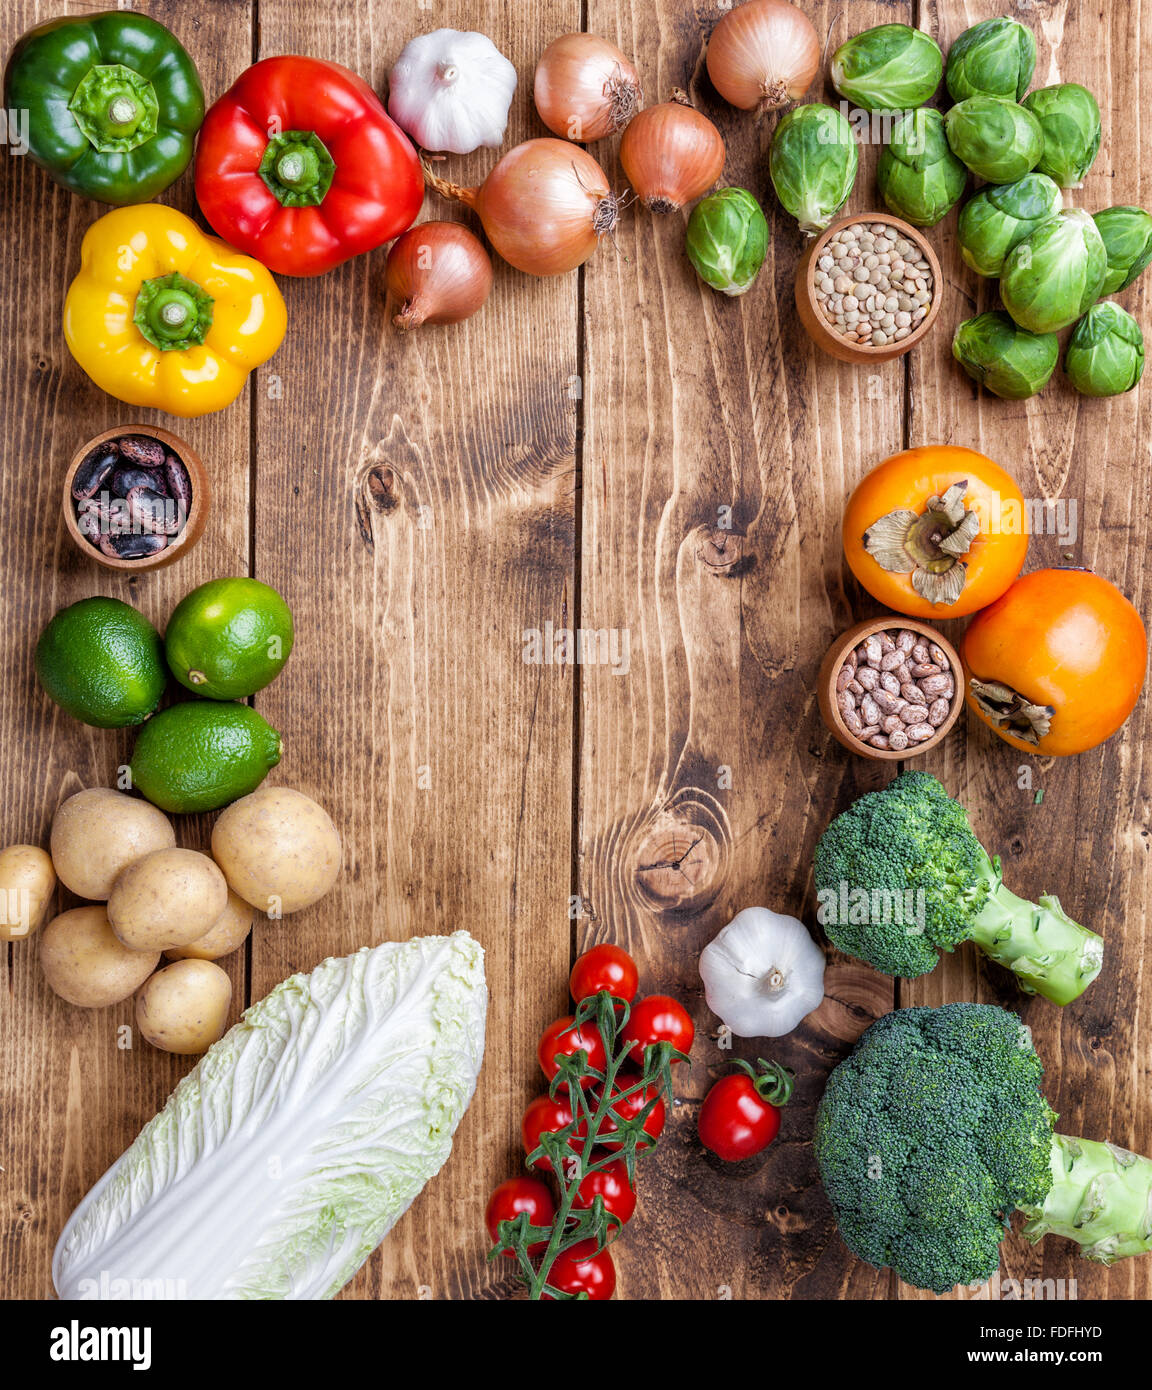 Fresh and healthy organic vegetables and food ingredients on wooden background Stock Photo